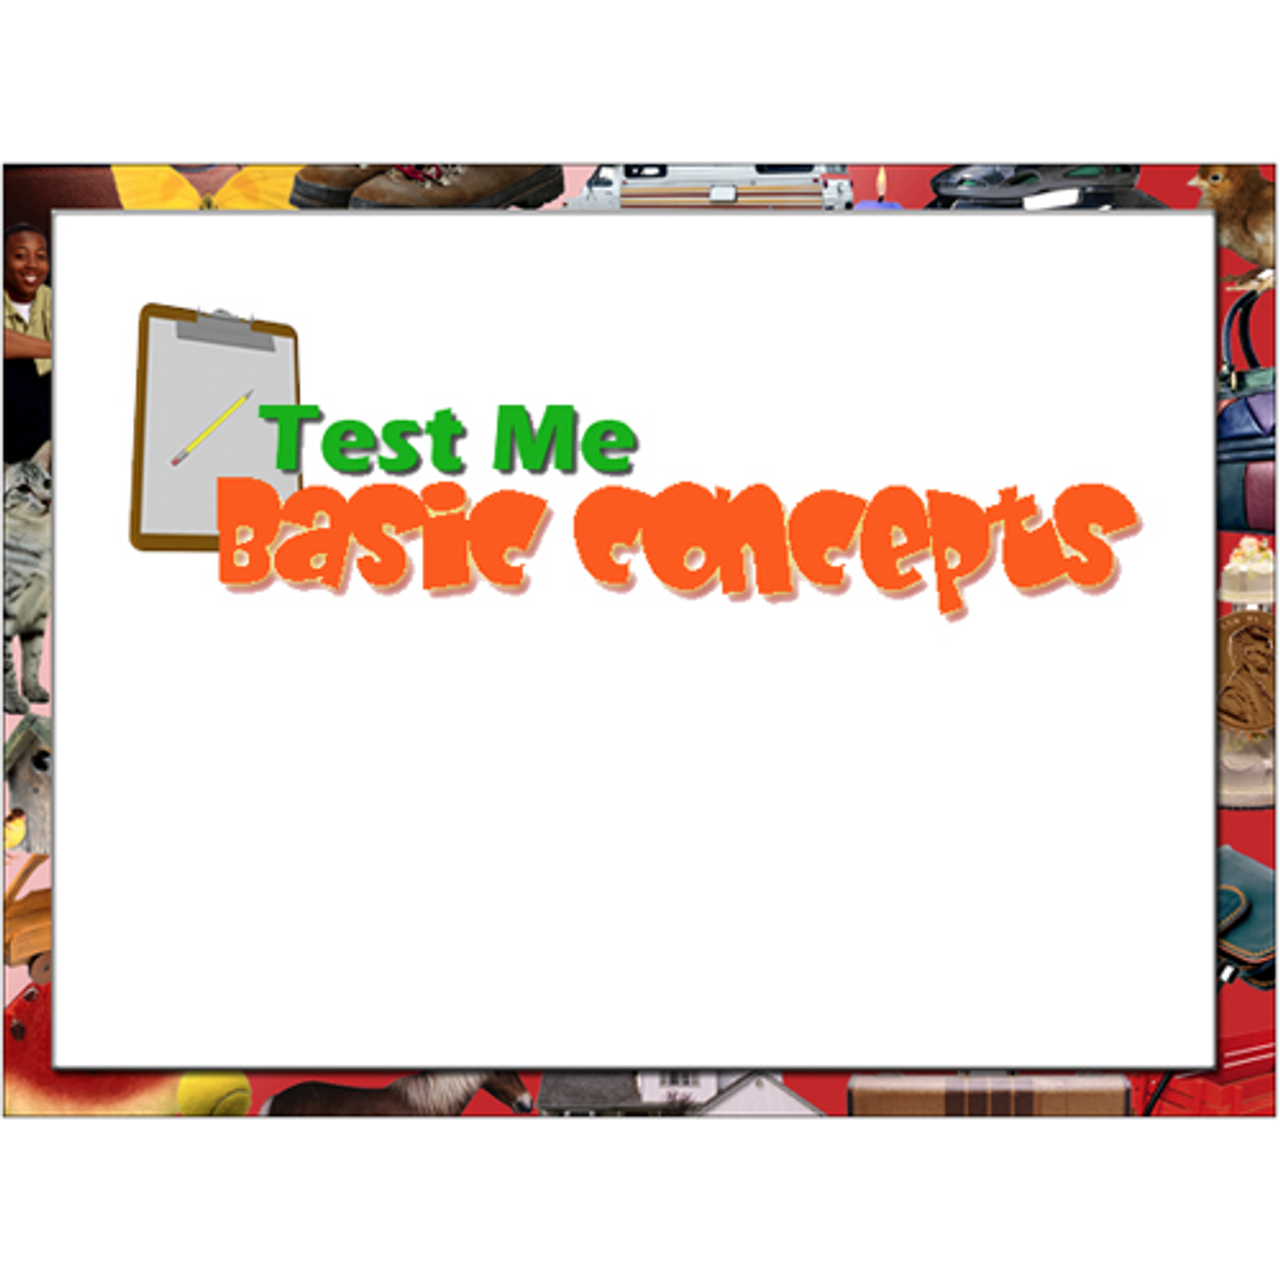 Test Me - Basic Concepts